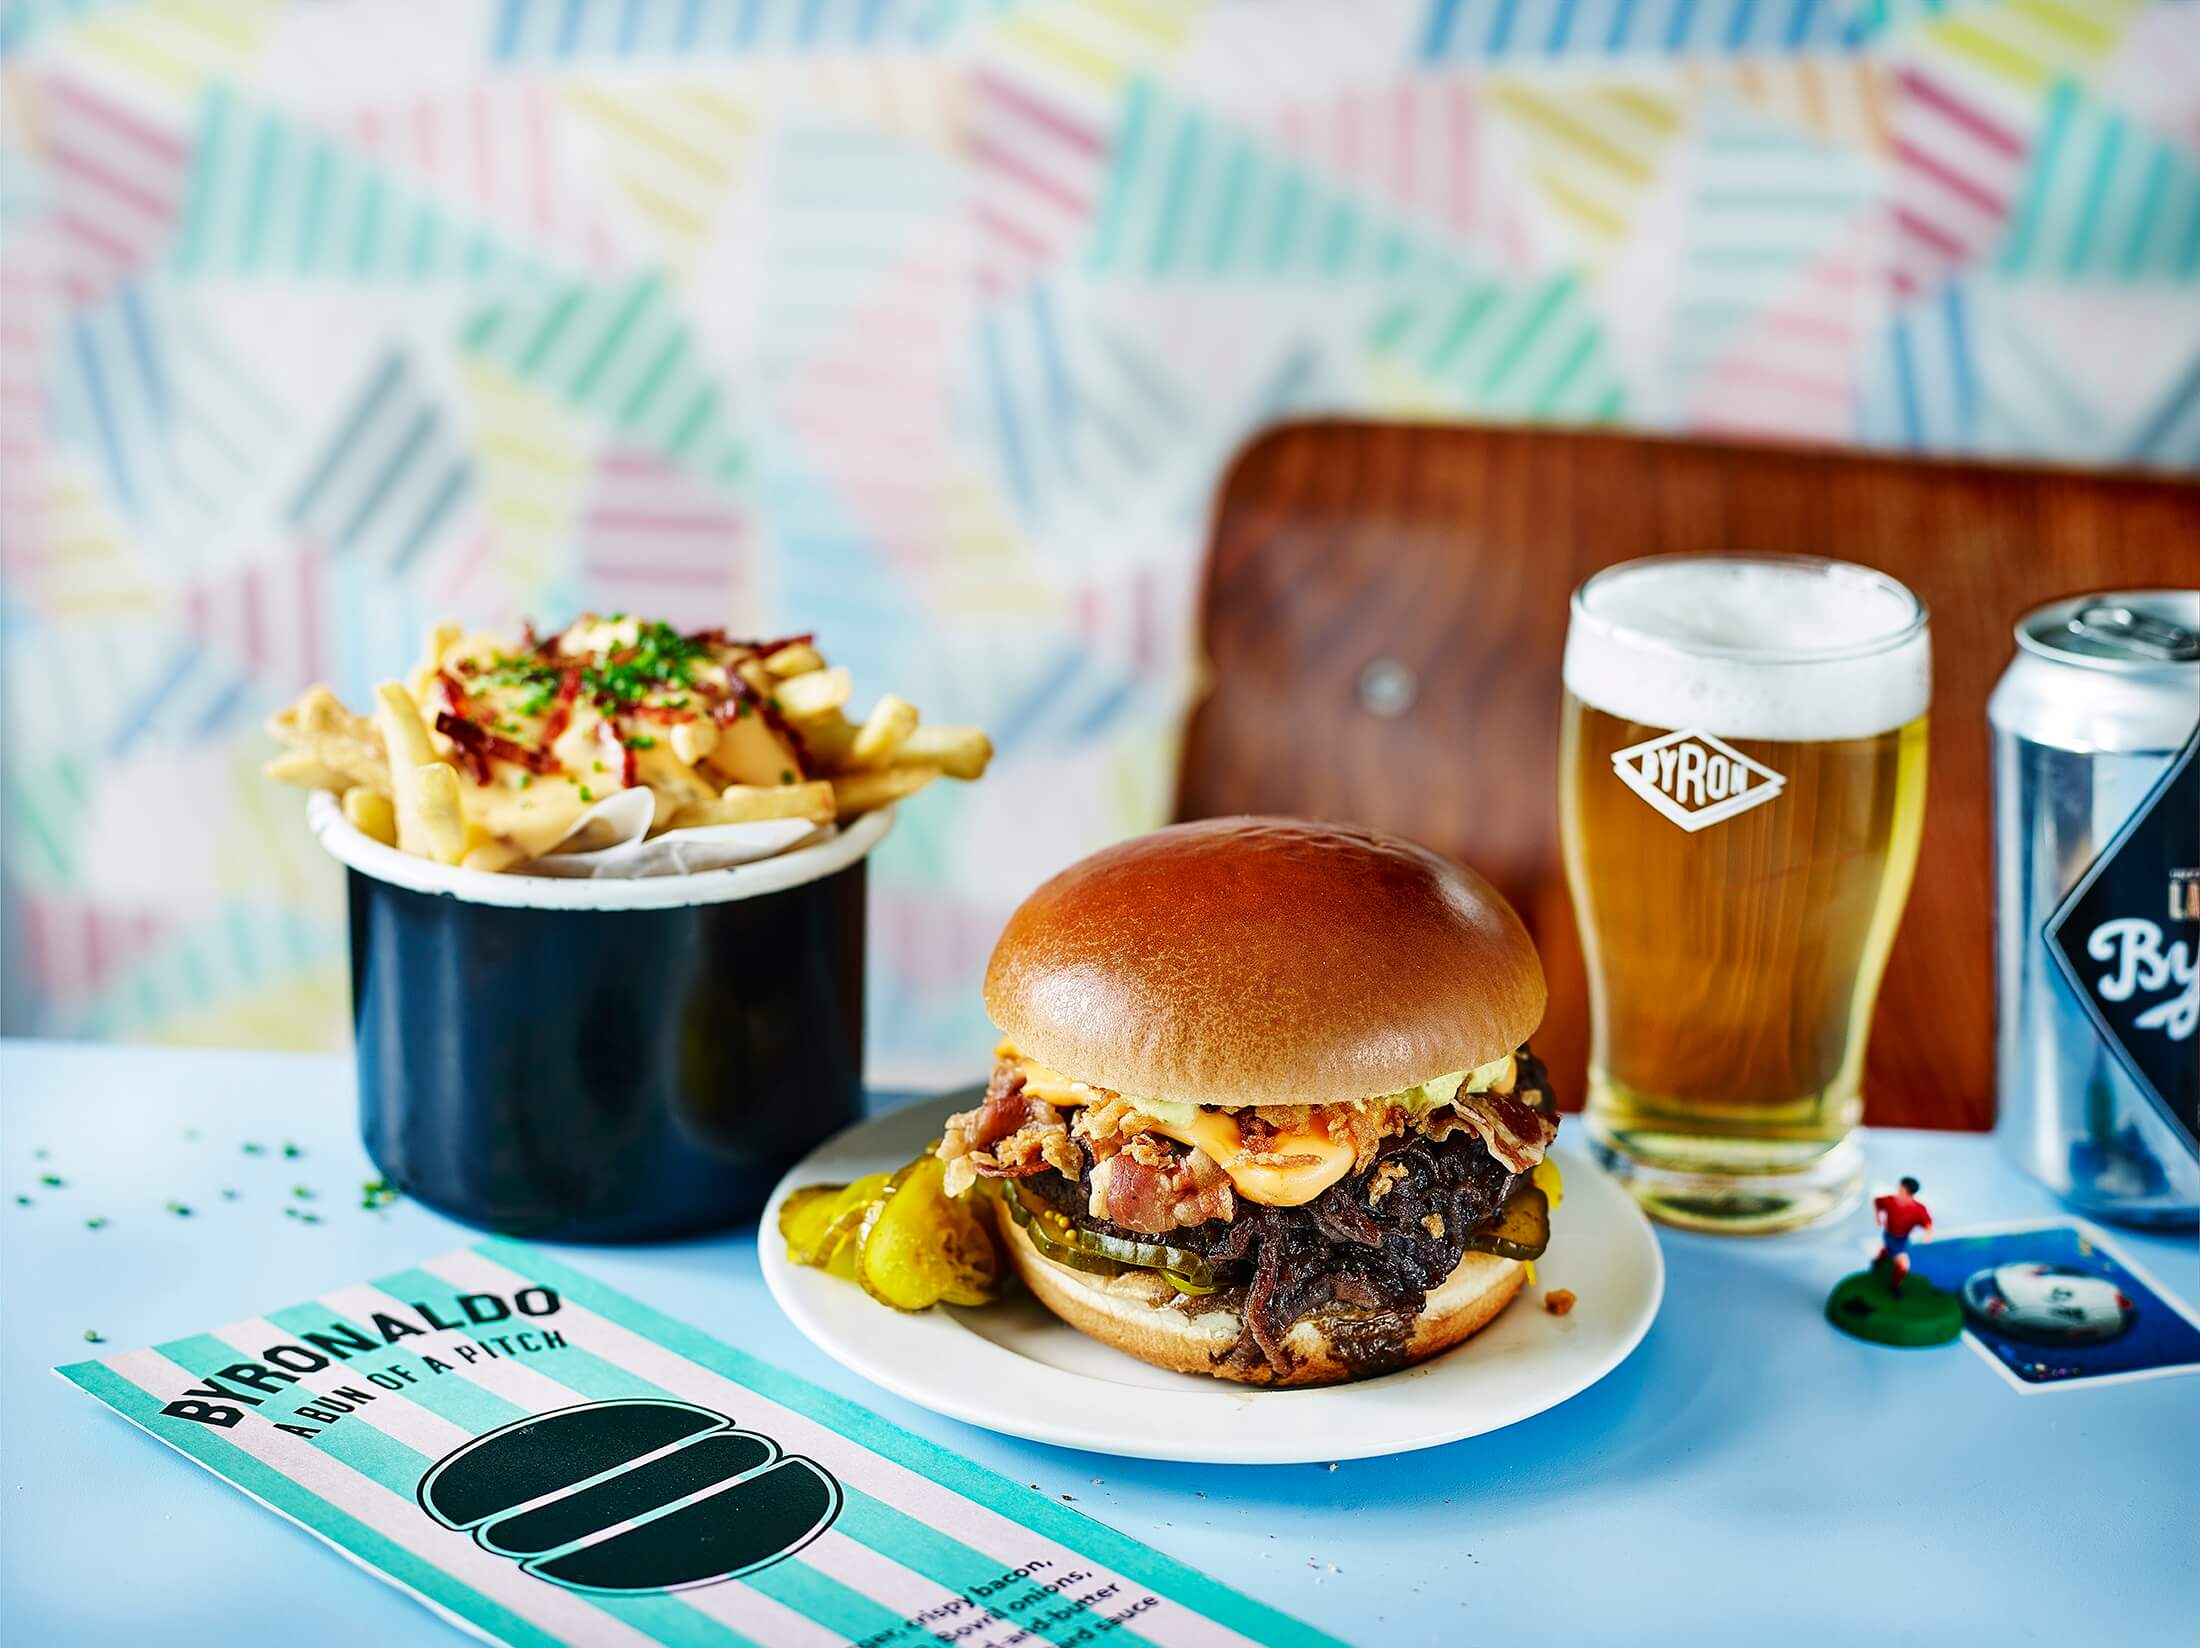 Byronaldo and fries and beer background 1